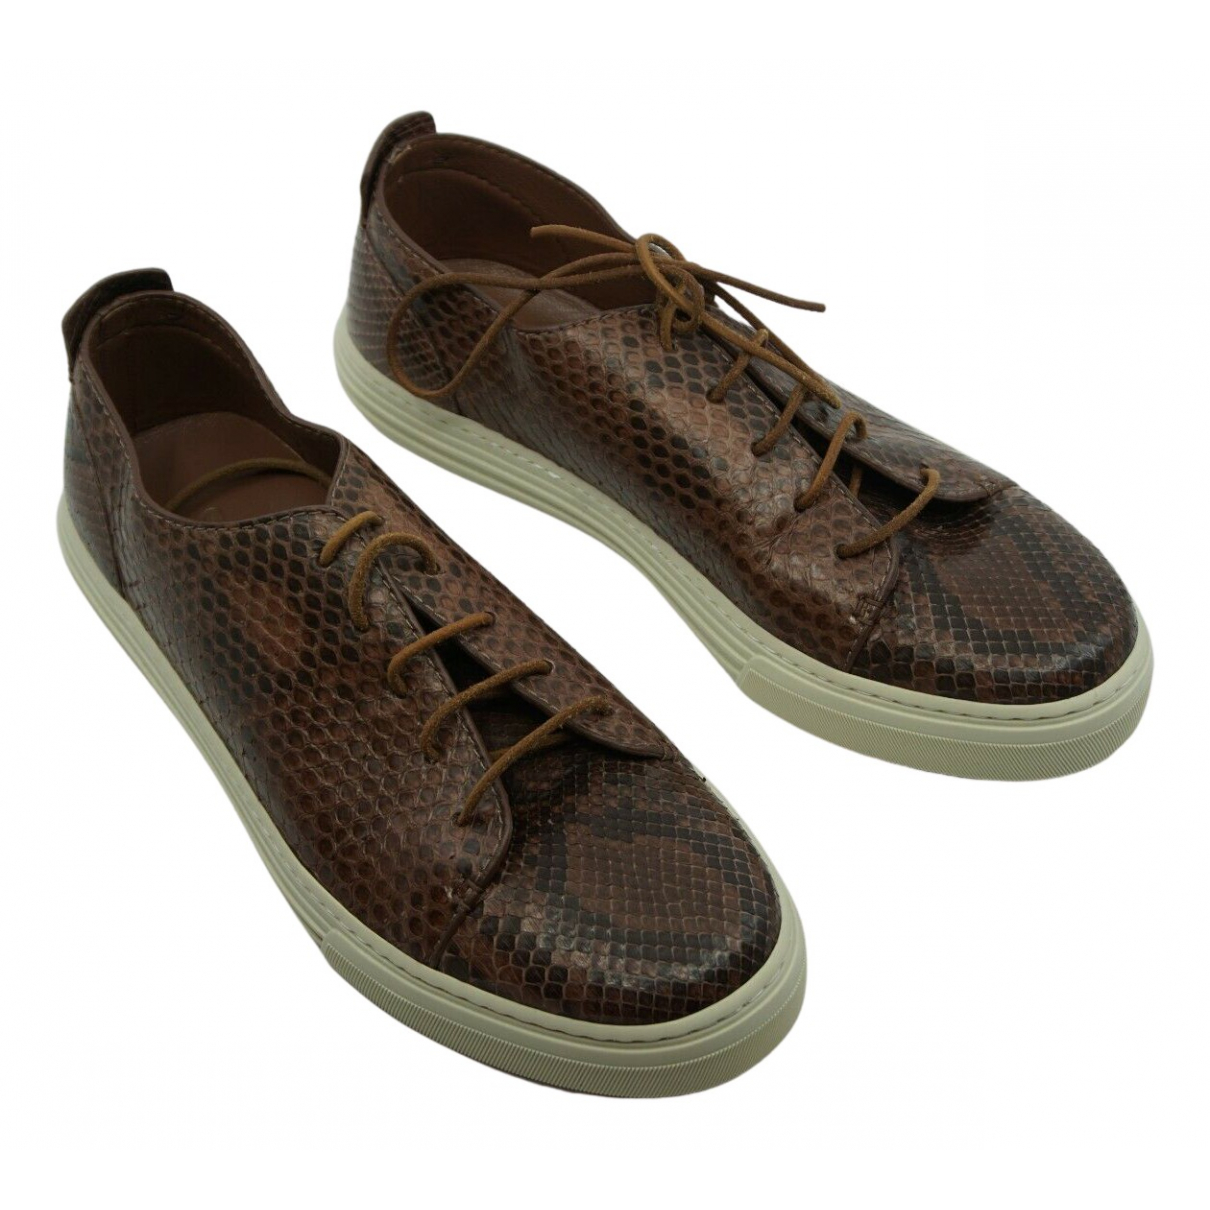 Gucci N Brown Python Trainers for Men 7 UK